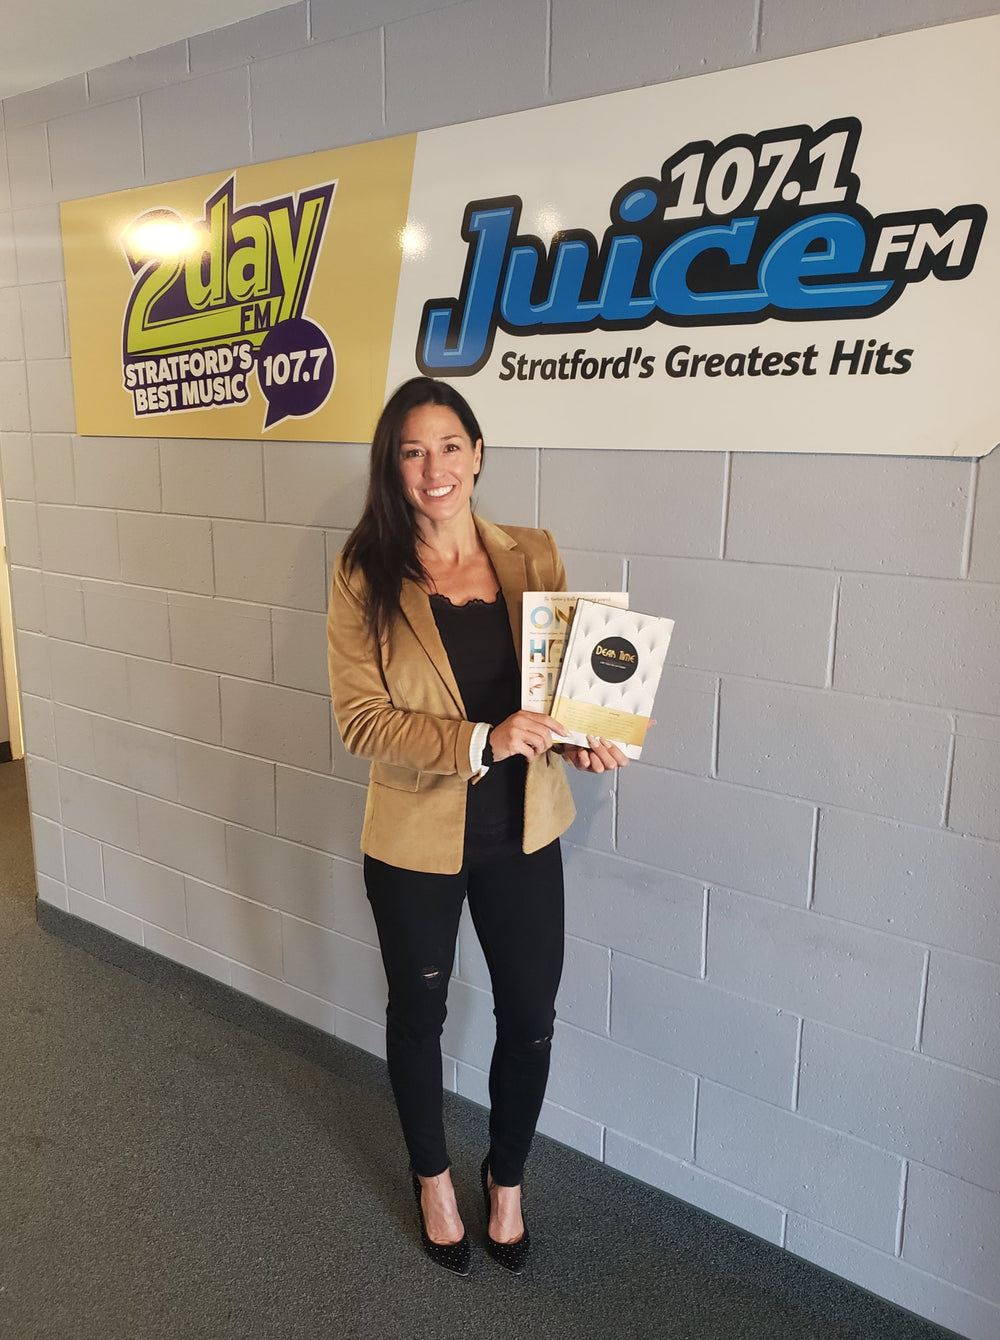 Author Deirdre Slattery on Juice FM